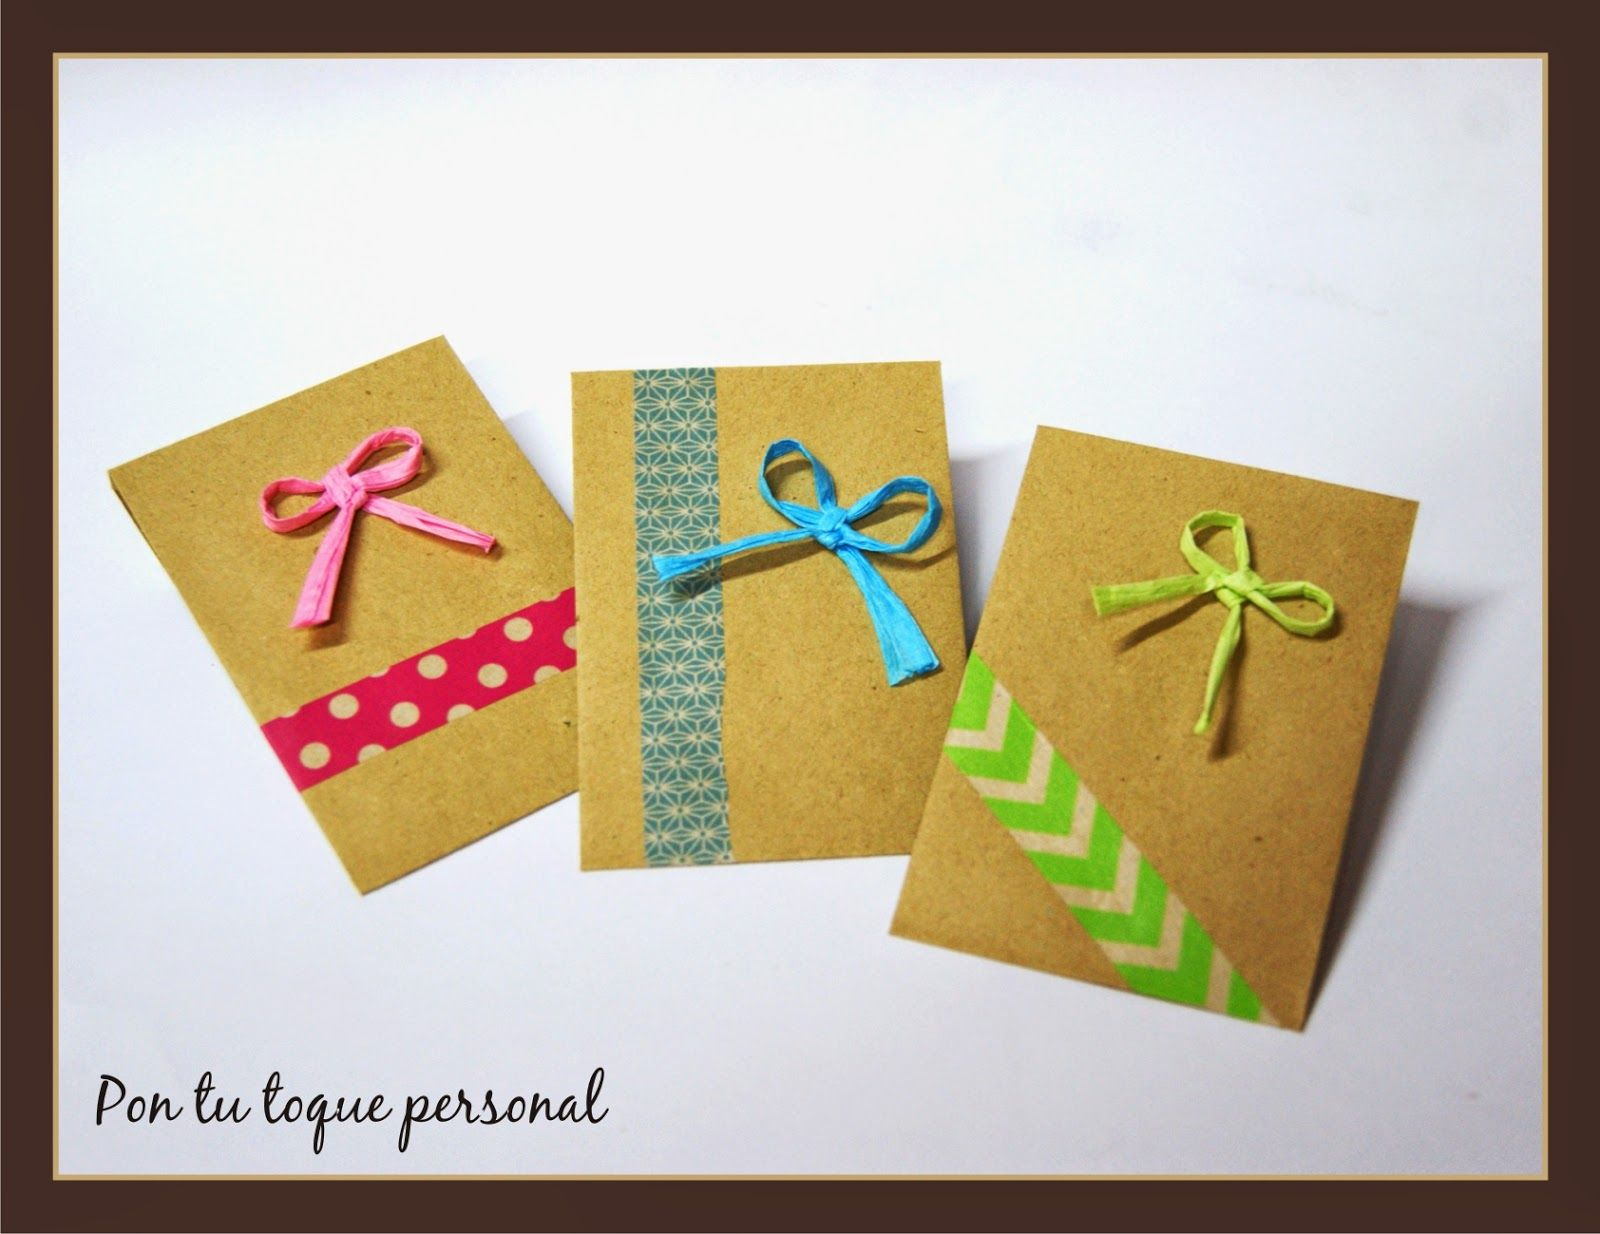 Ideas Para Decorar Con Washi Tape Ideas Para Packaging De Boda Con Estilo Kraft Decoración